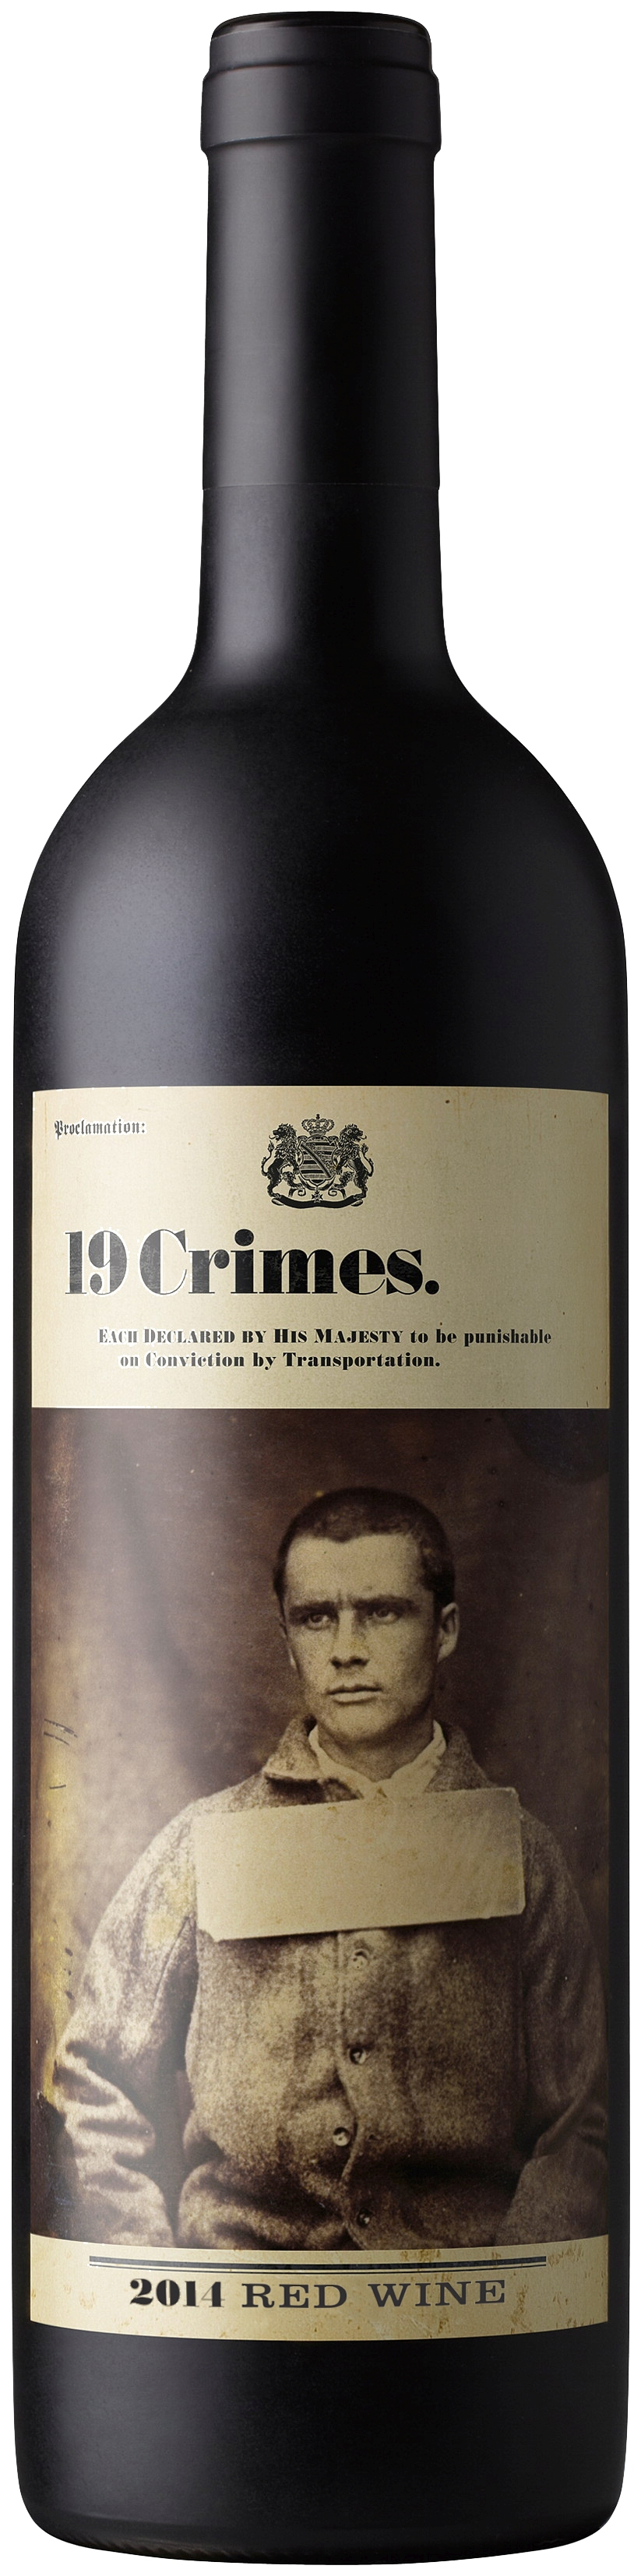 19 Crimes, Red Blend, South Australia, semi-dry, red